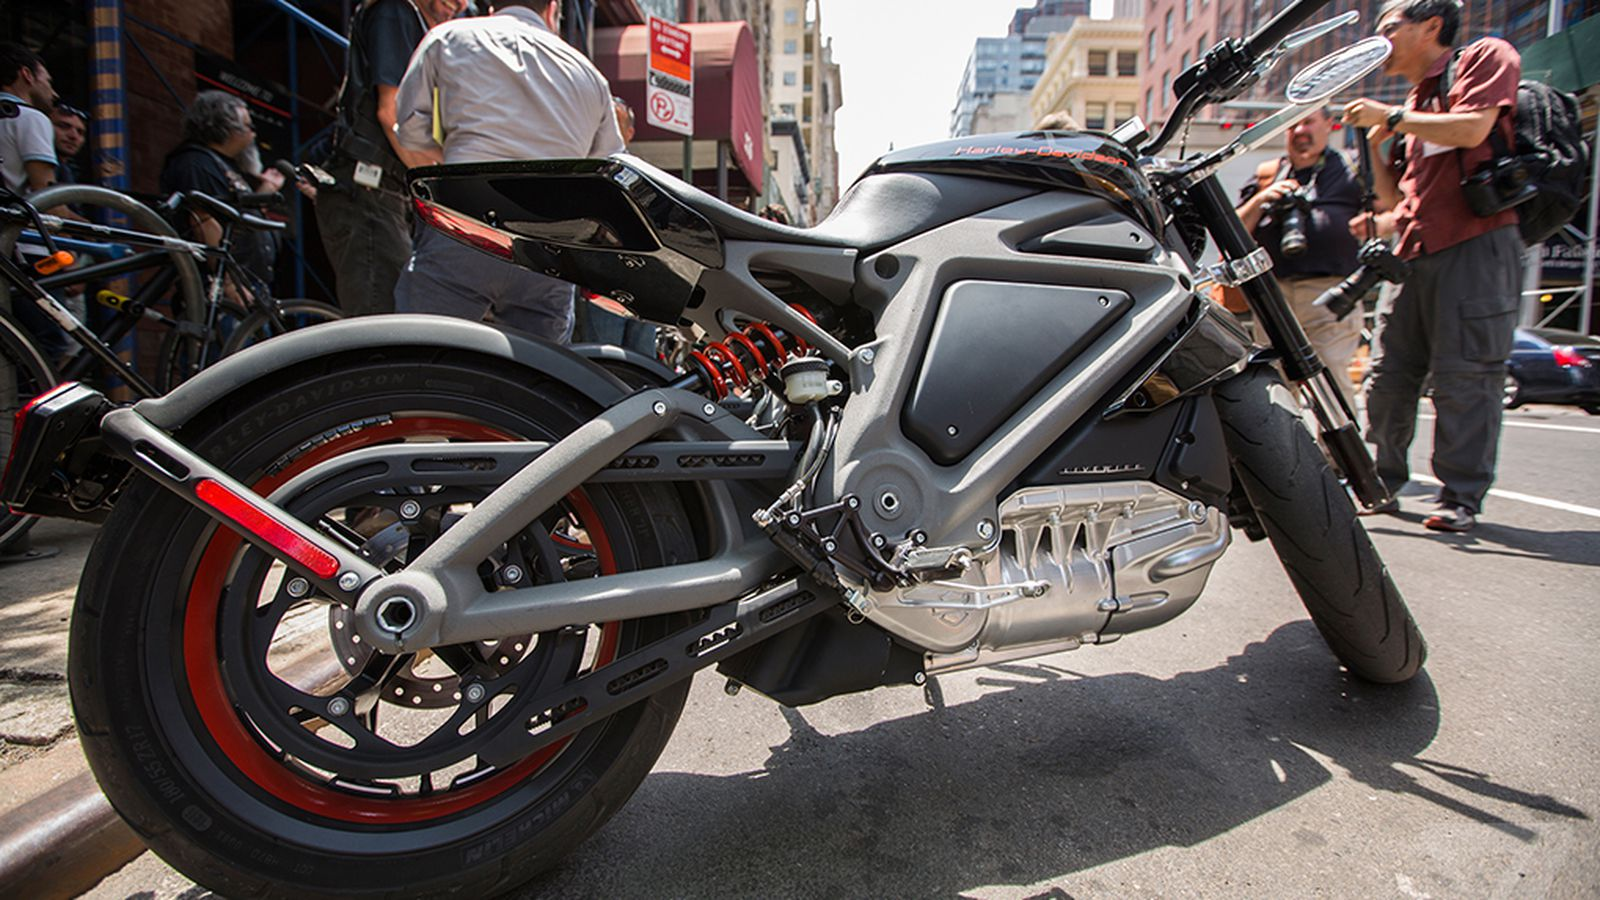 We rode Harley-Davidson's incredible electric motorcycle ...